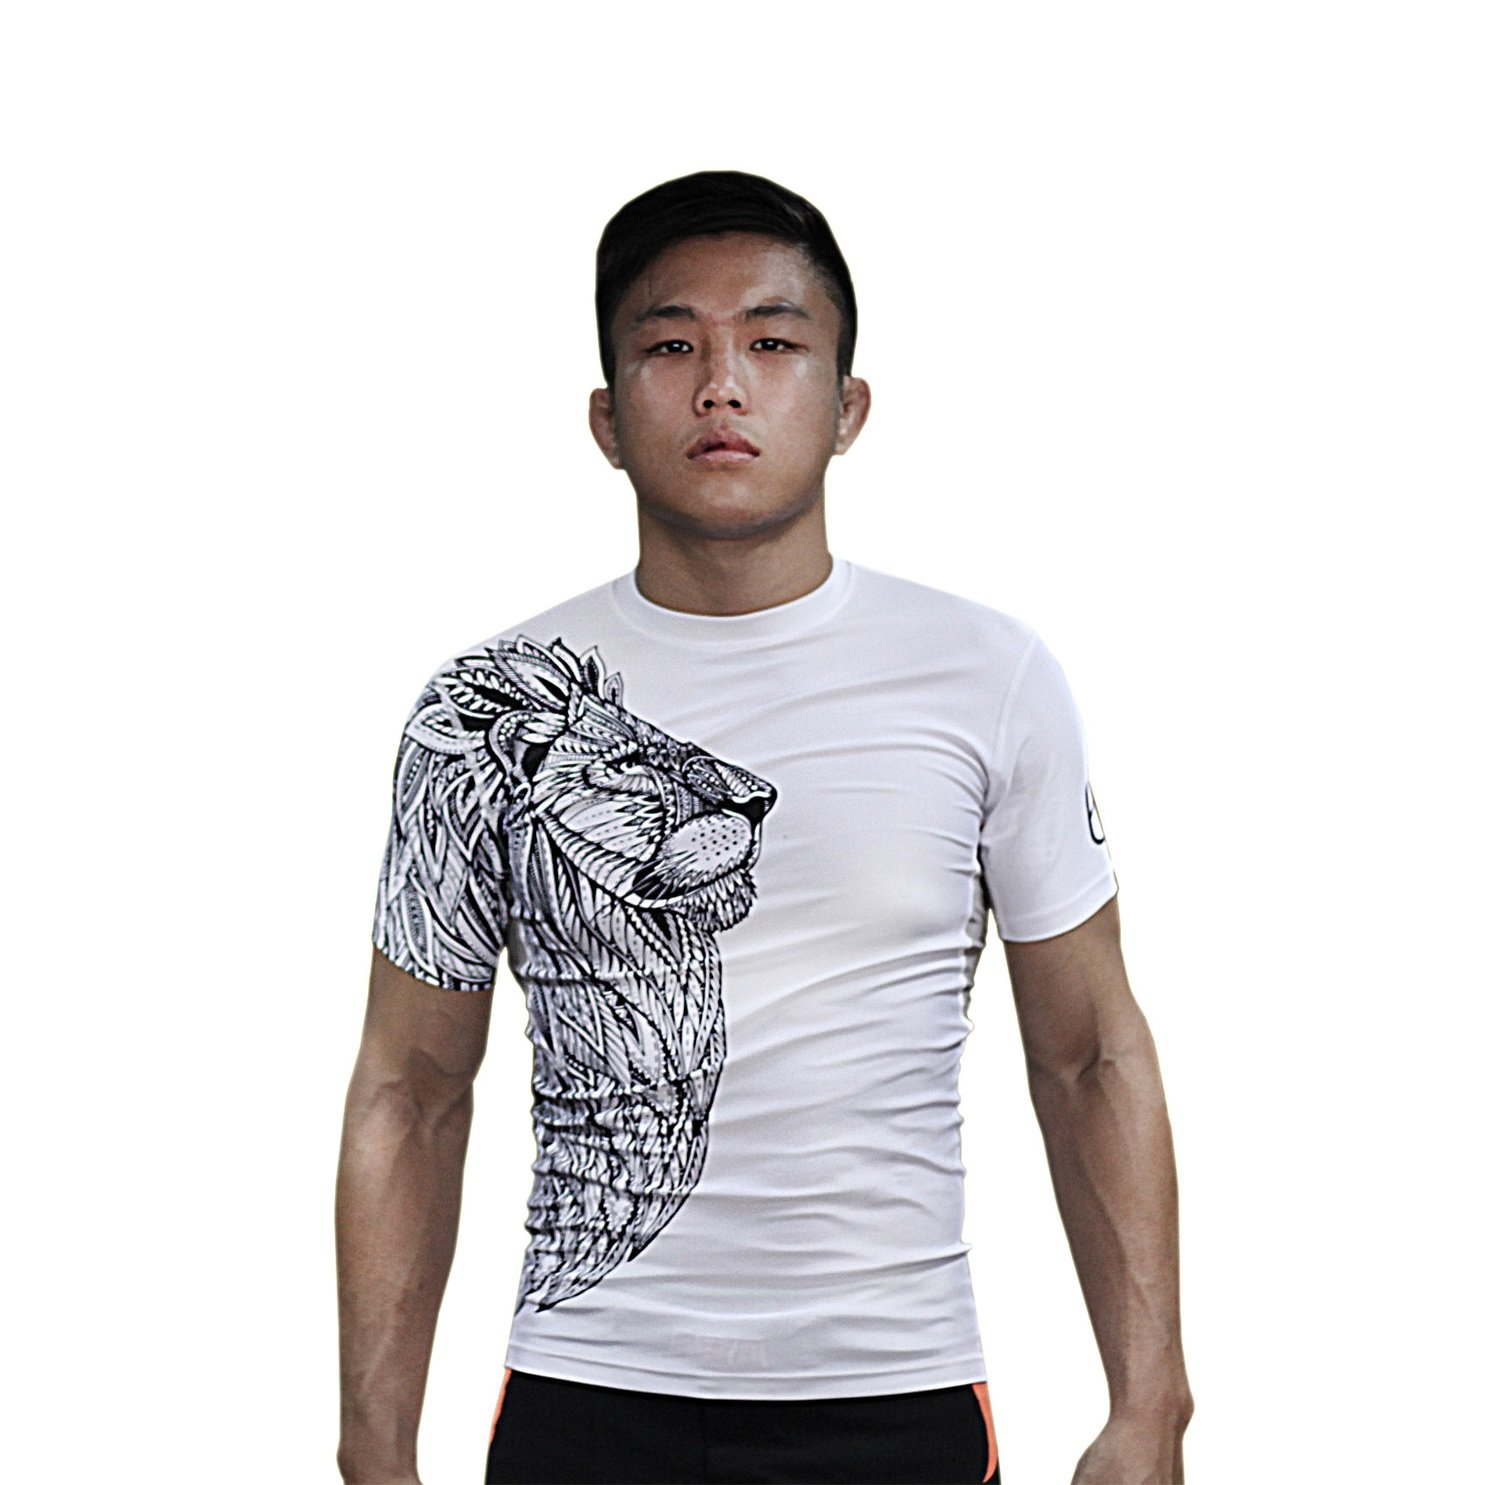 The Lion Rash Guard - XS only